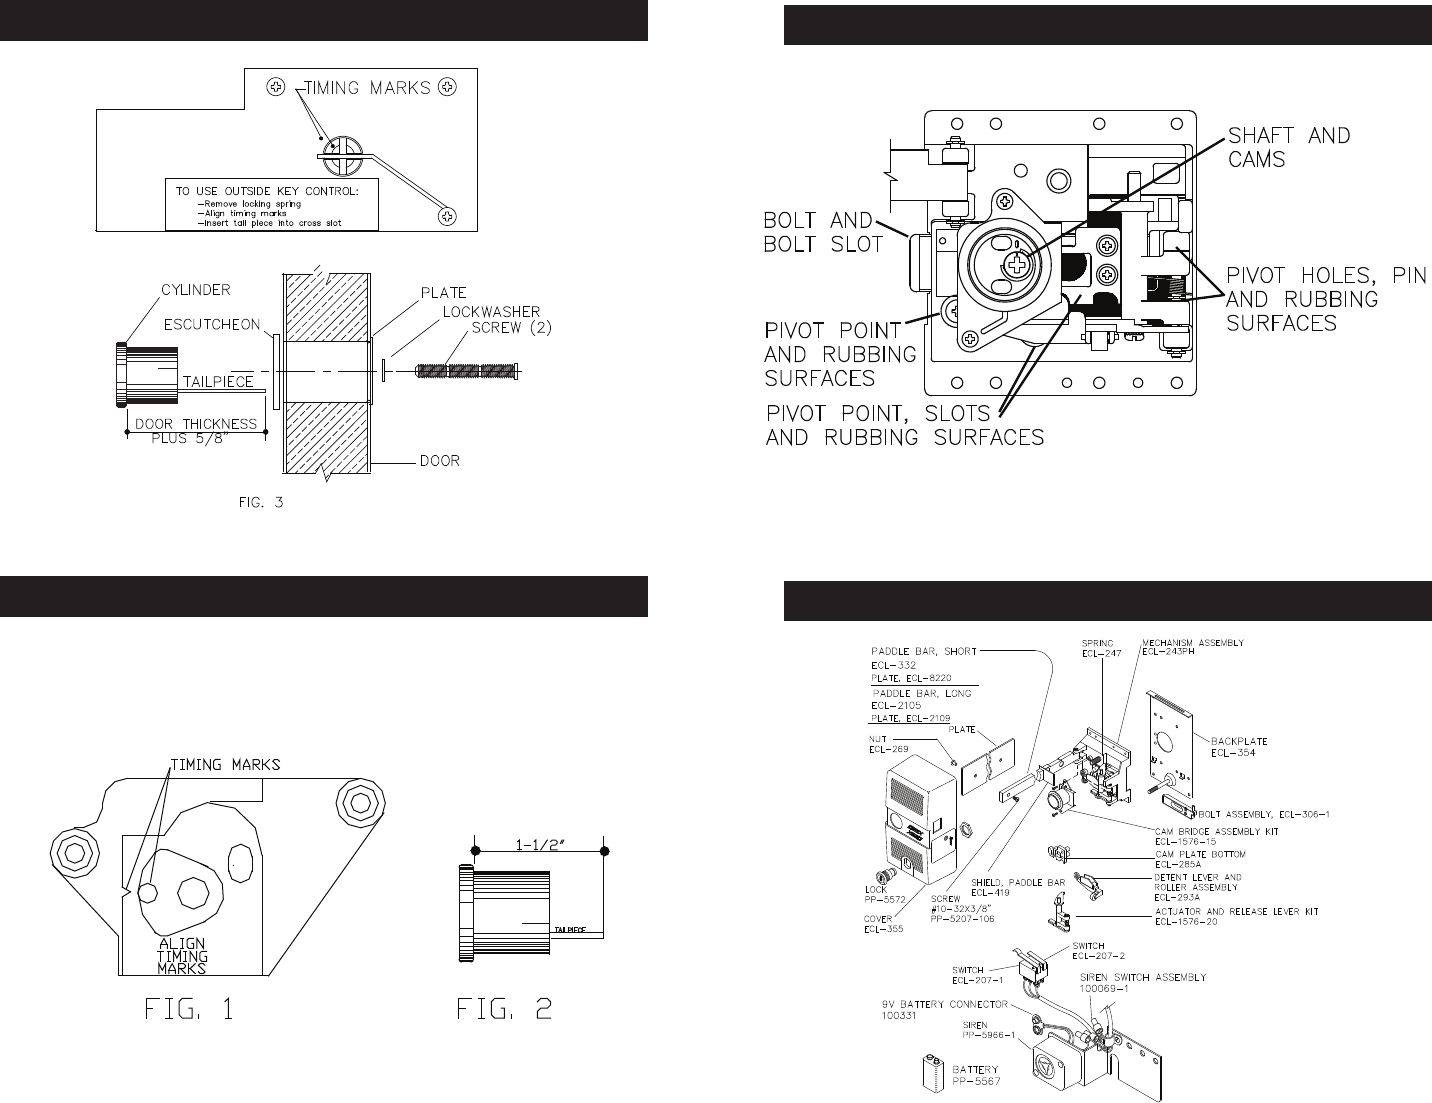 [SCHEMATICS_4FD]  Detex ECL 230D Maintenance Manual 230DMaintenance | Detex Wiring Diagrams |  | UserManual.wiki